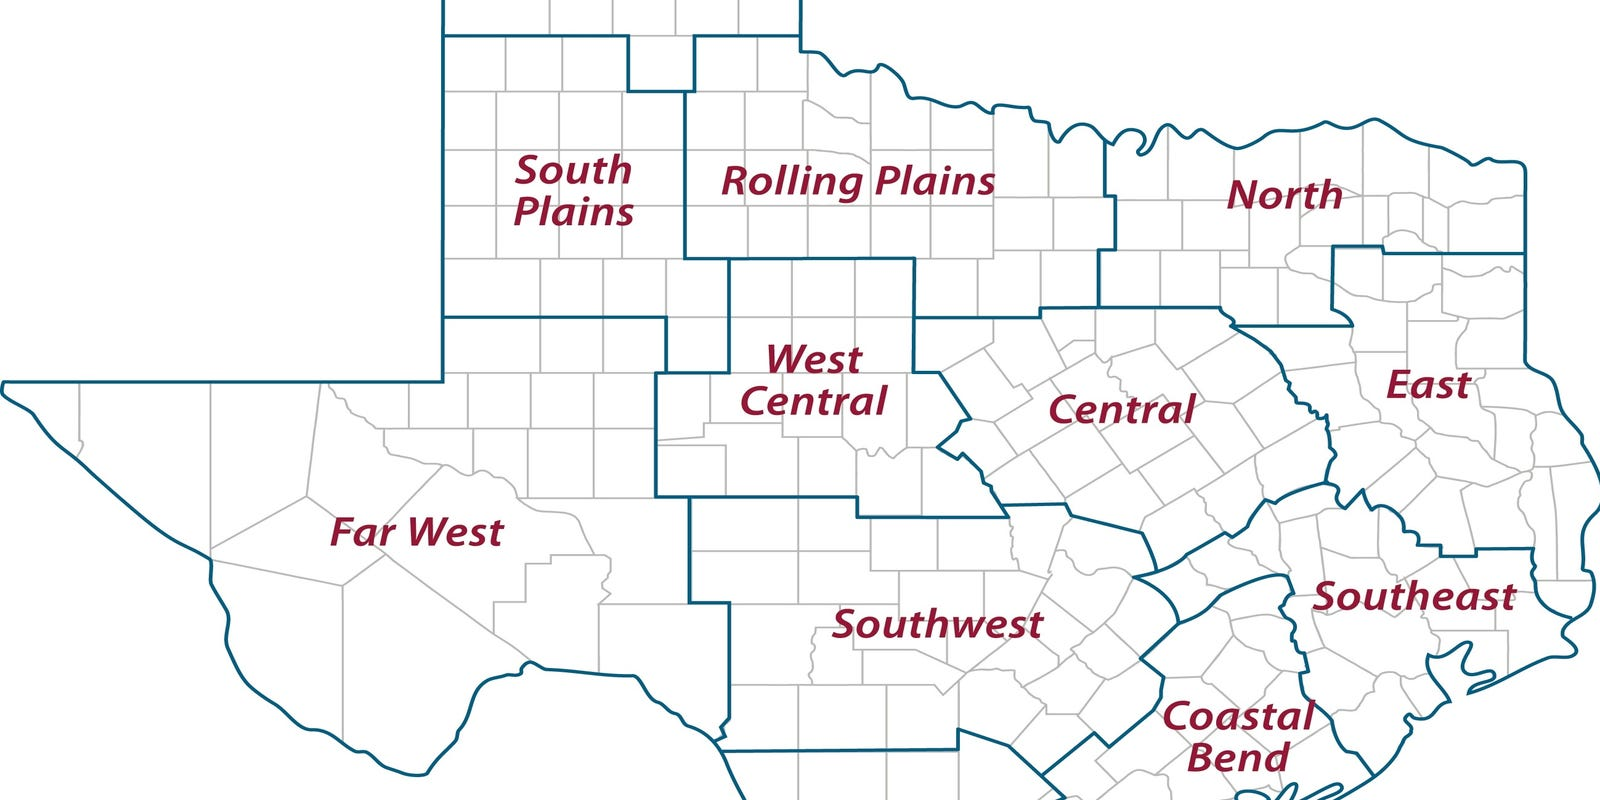 Average last frost date has passed for Abilene, much of state